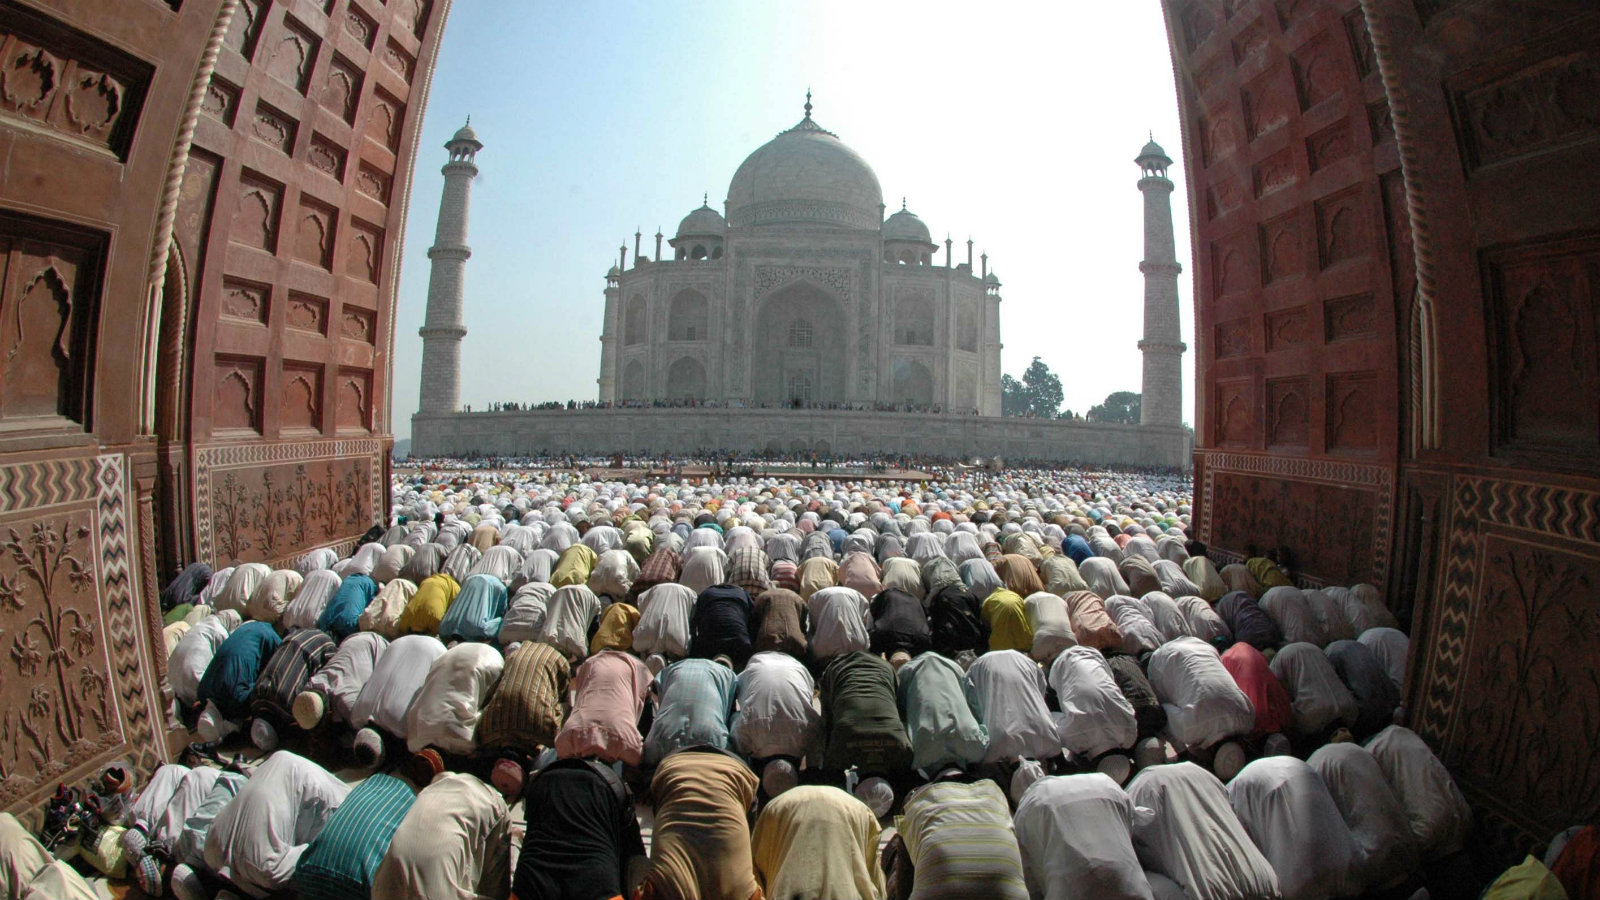 Muslims offer prayers in front of the historic Taj Mahal during Eid al-Fitr in the northern Indian city of Agra September 21, 2009. Eid al-Fitr marks the end of Ramadan, the holiest month in the Islamic calendar, during which Muslims around the world abstain from eating, drinking and sexual relations from sunrise to sunset.